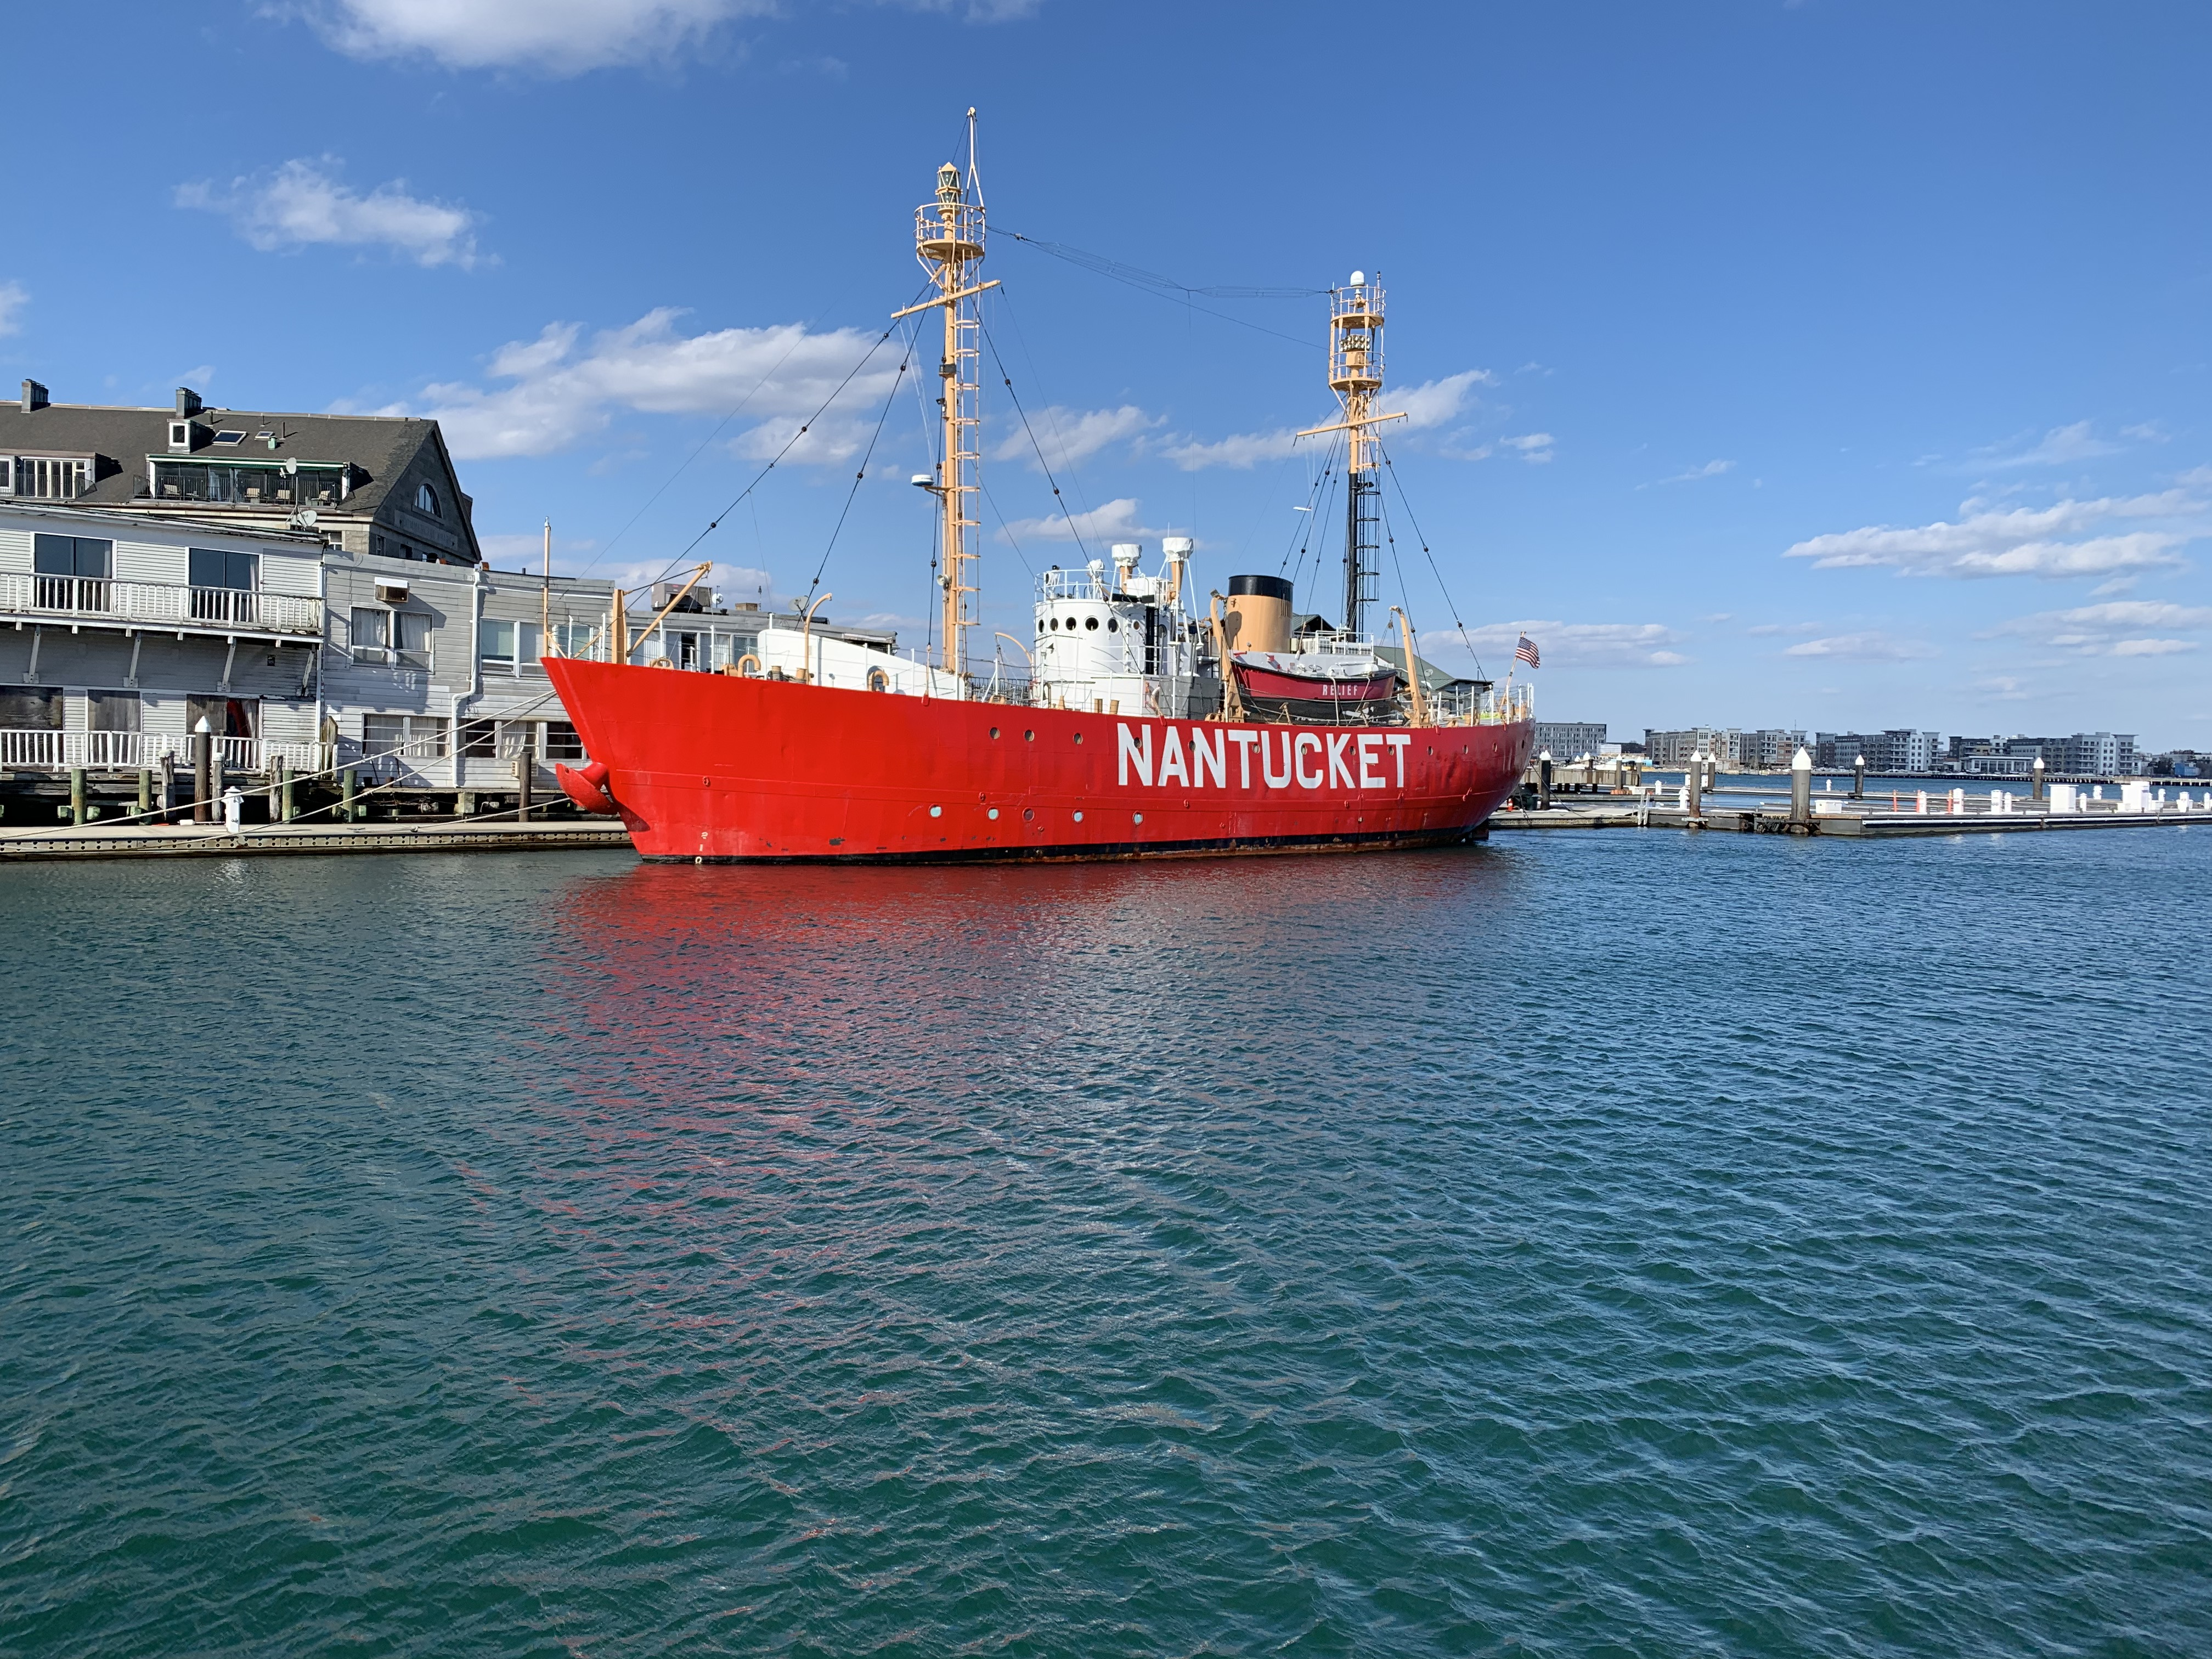 Nantucket Lightship Docked at Long Wharf